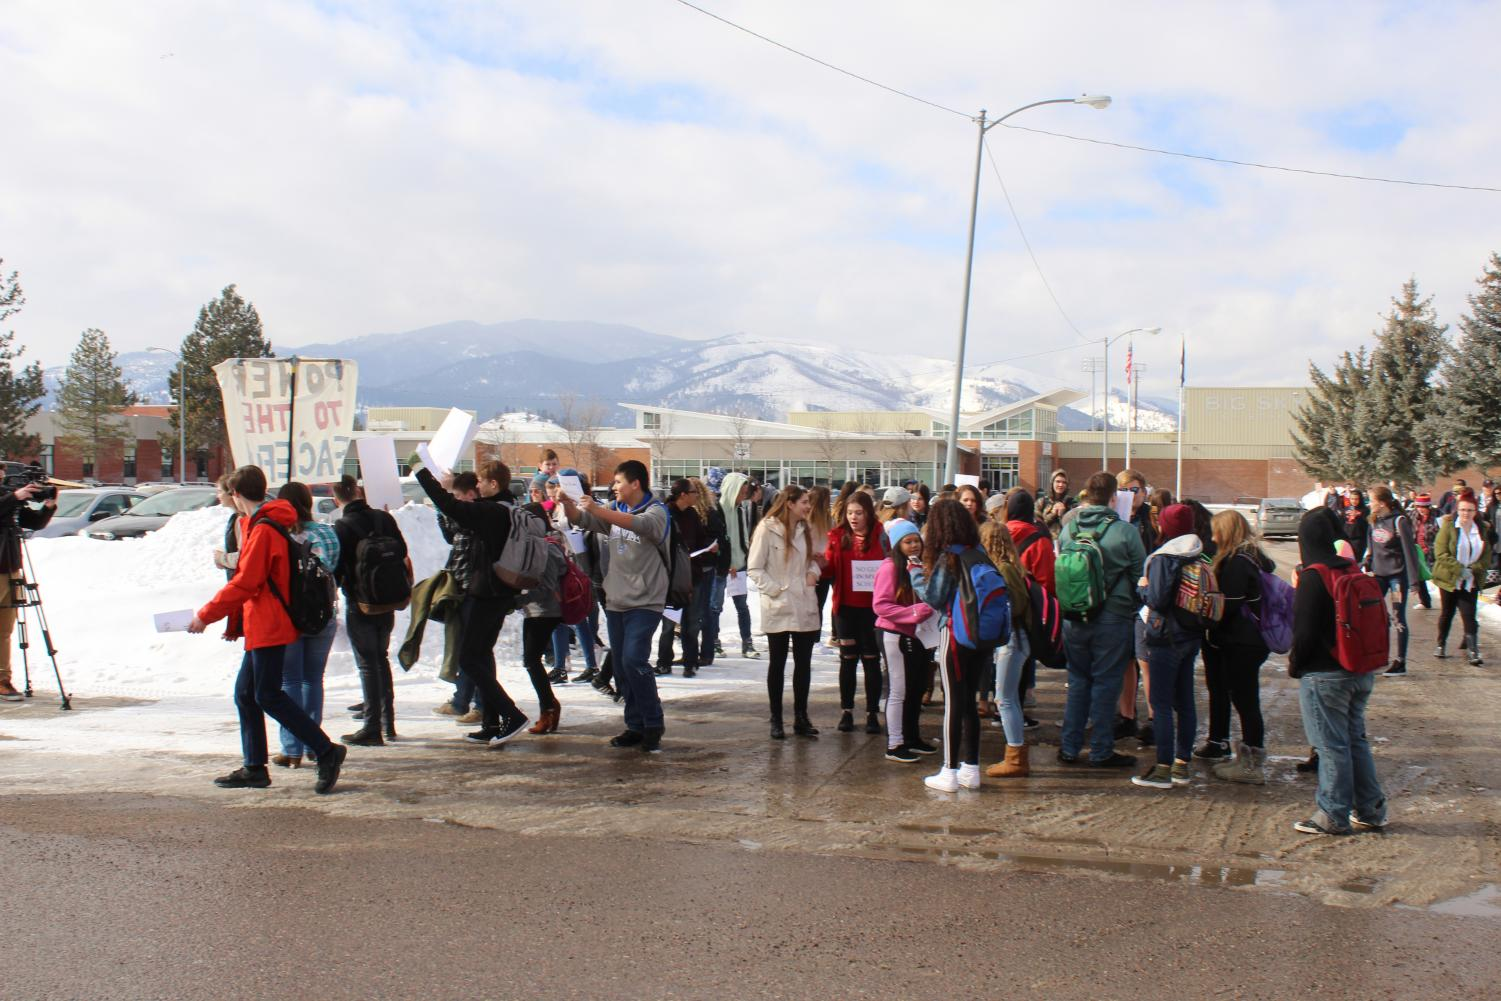 Students at the Feb 21 walkout.